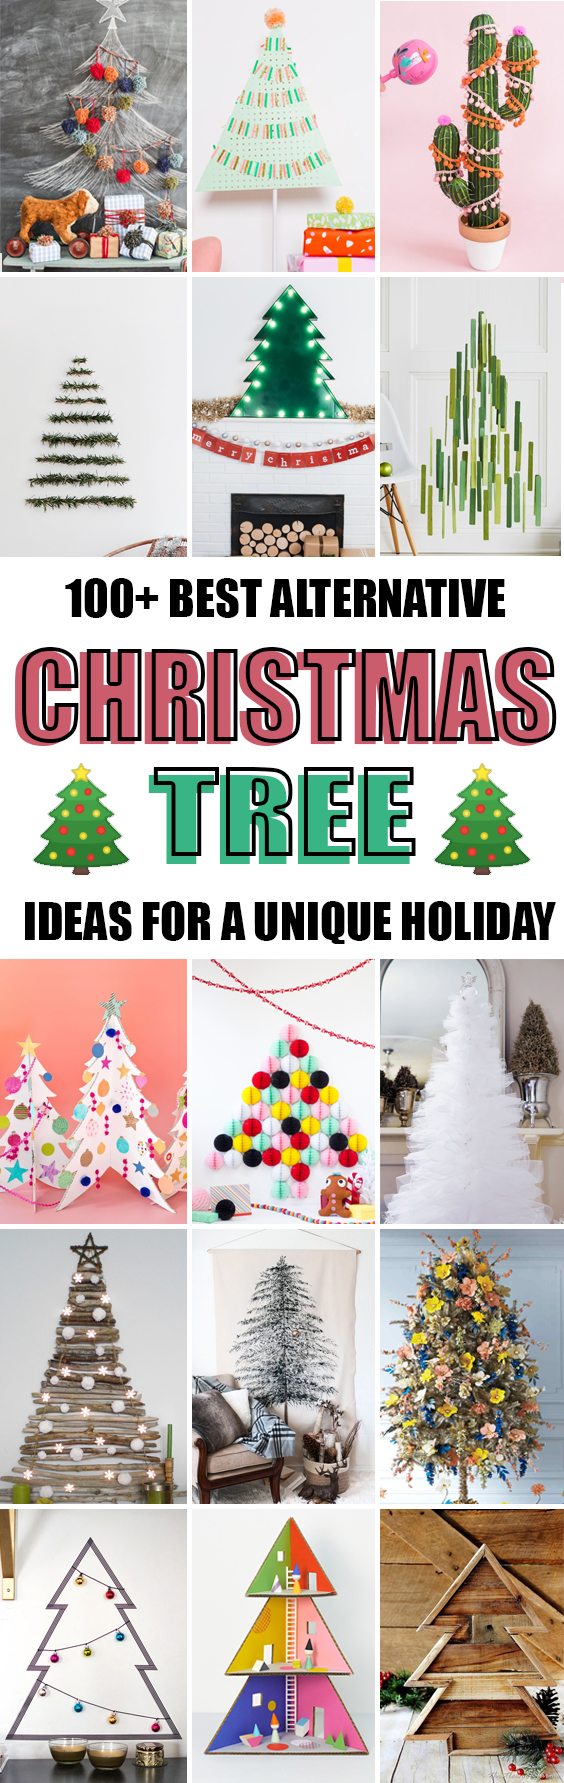 Here is a list of 100+ ideas for alternative Christmas tree you can try out this year for a unique holiday!! #christmas #christmastree #diy